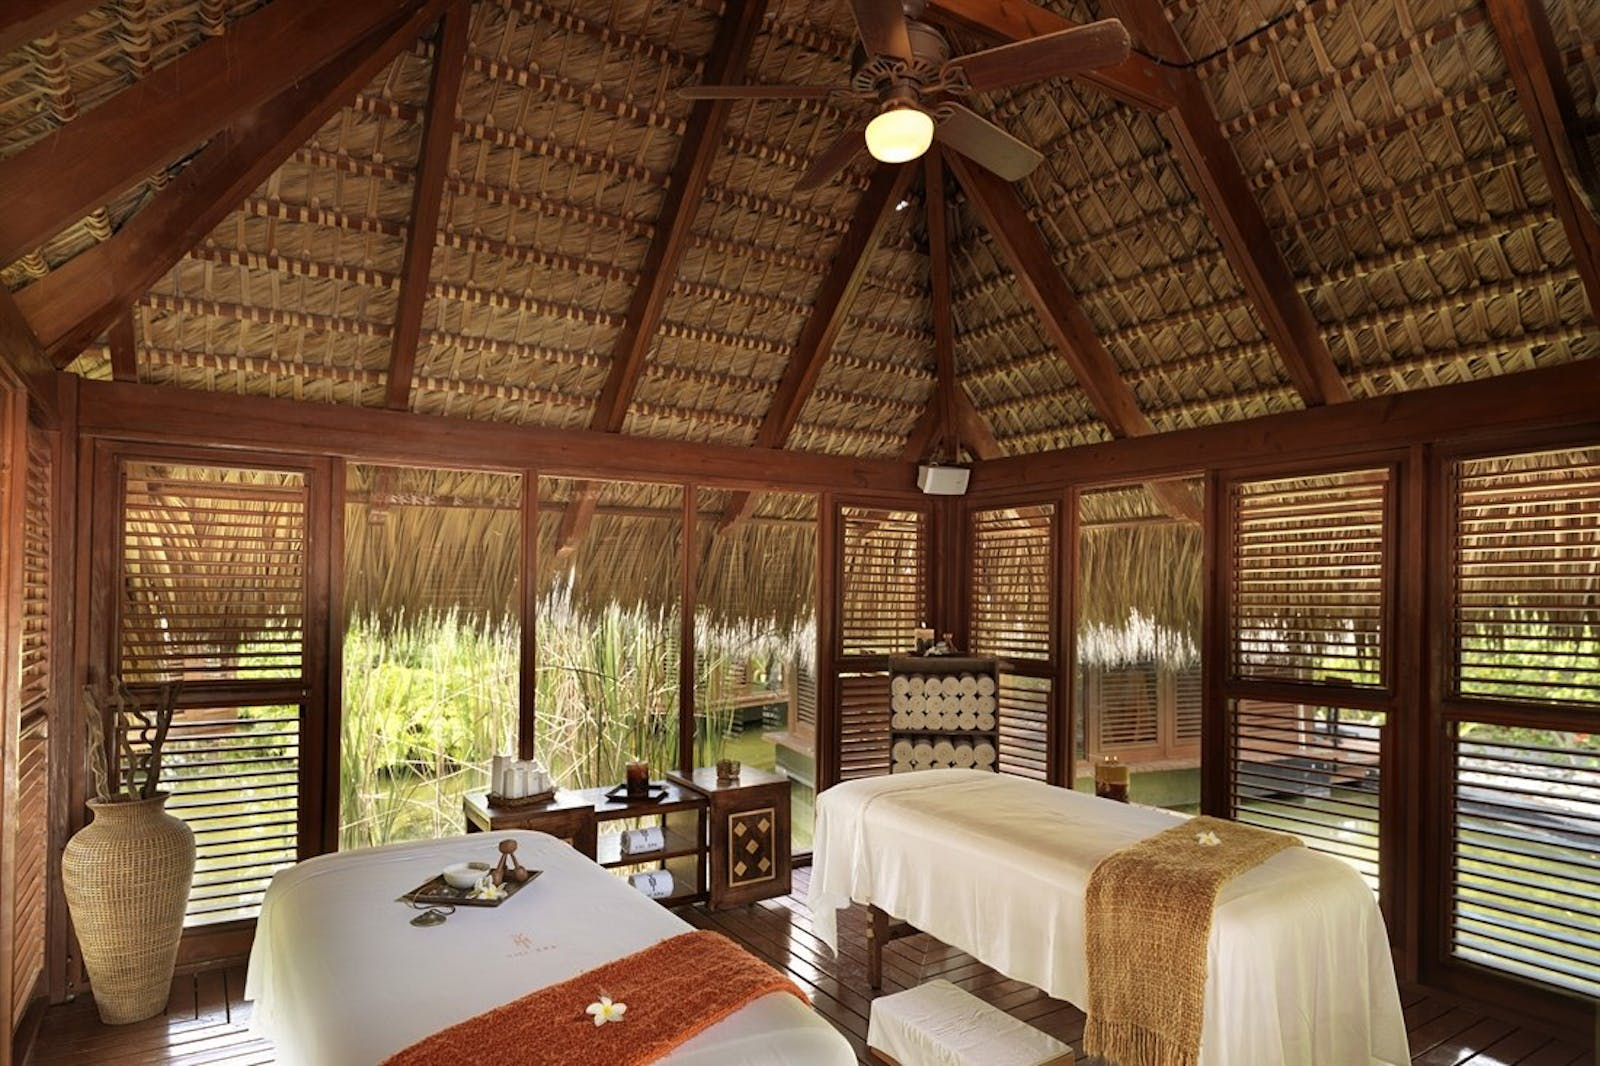 Yhi Spa Treatment Room at The Reserve at Paradisus Palma Real, Dominican Republic